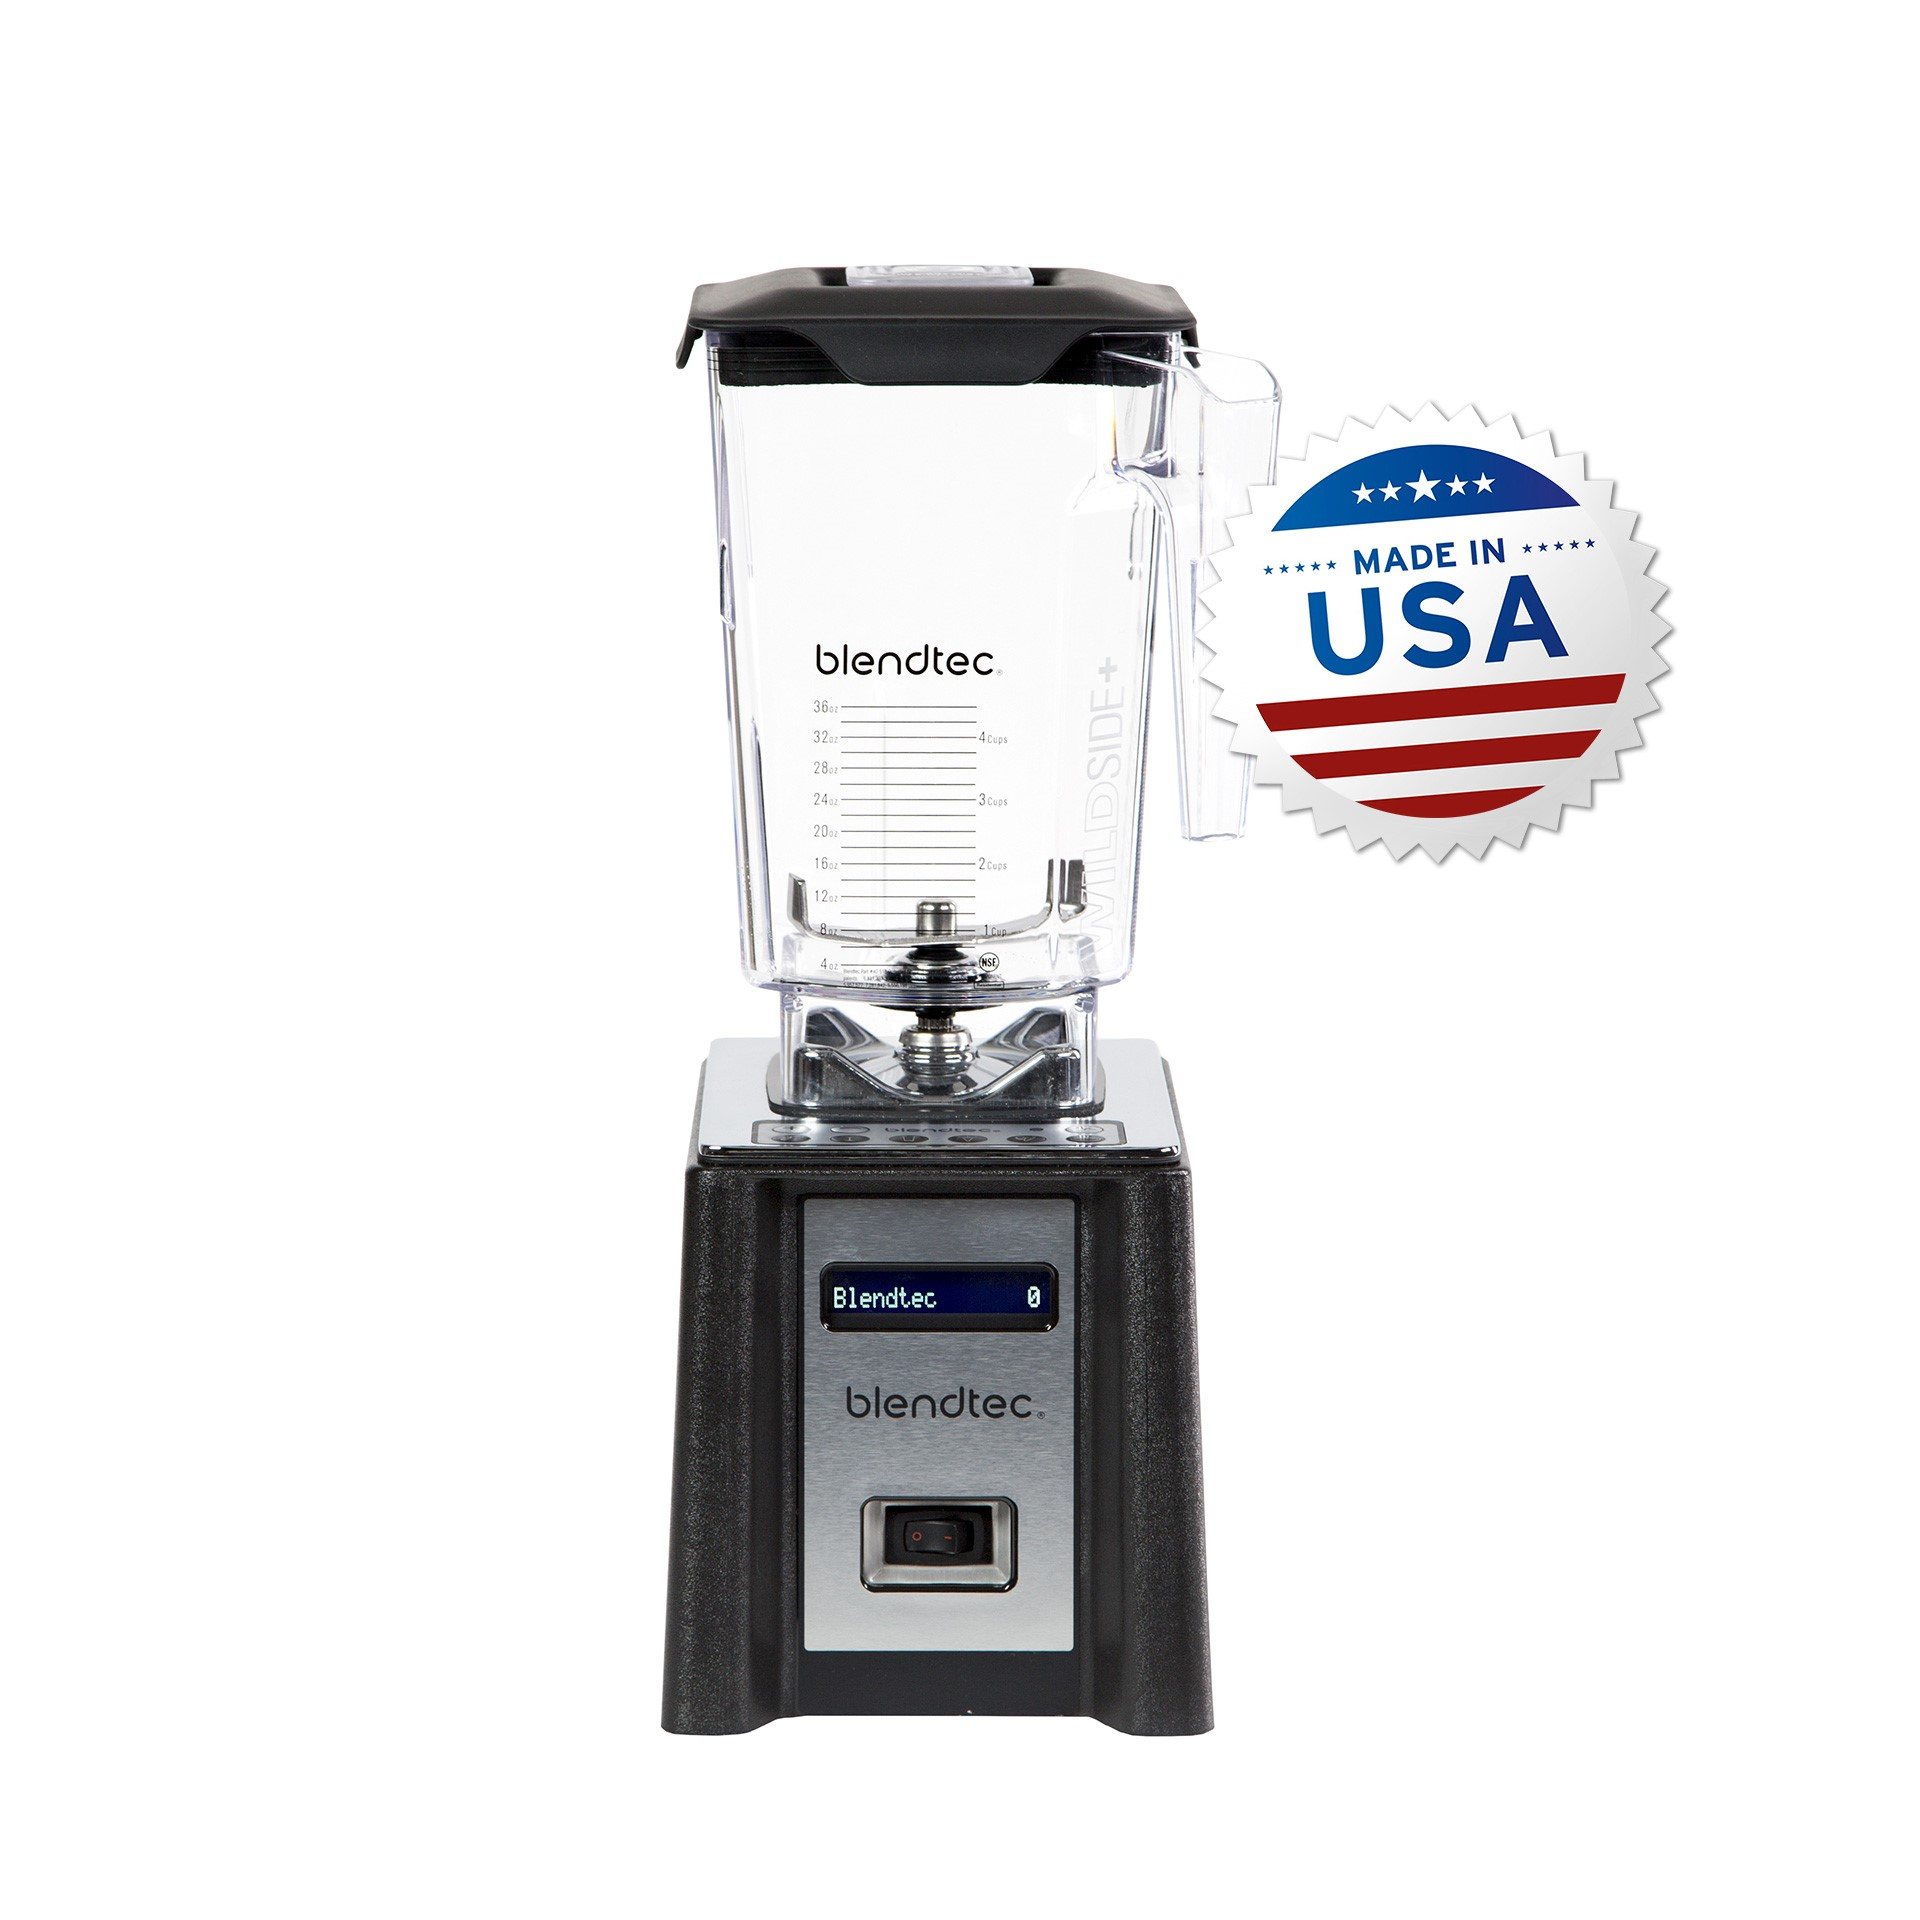 Blendtec Professional 750 made in USA